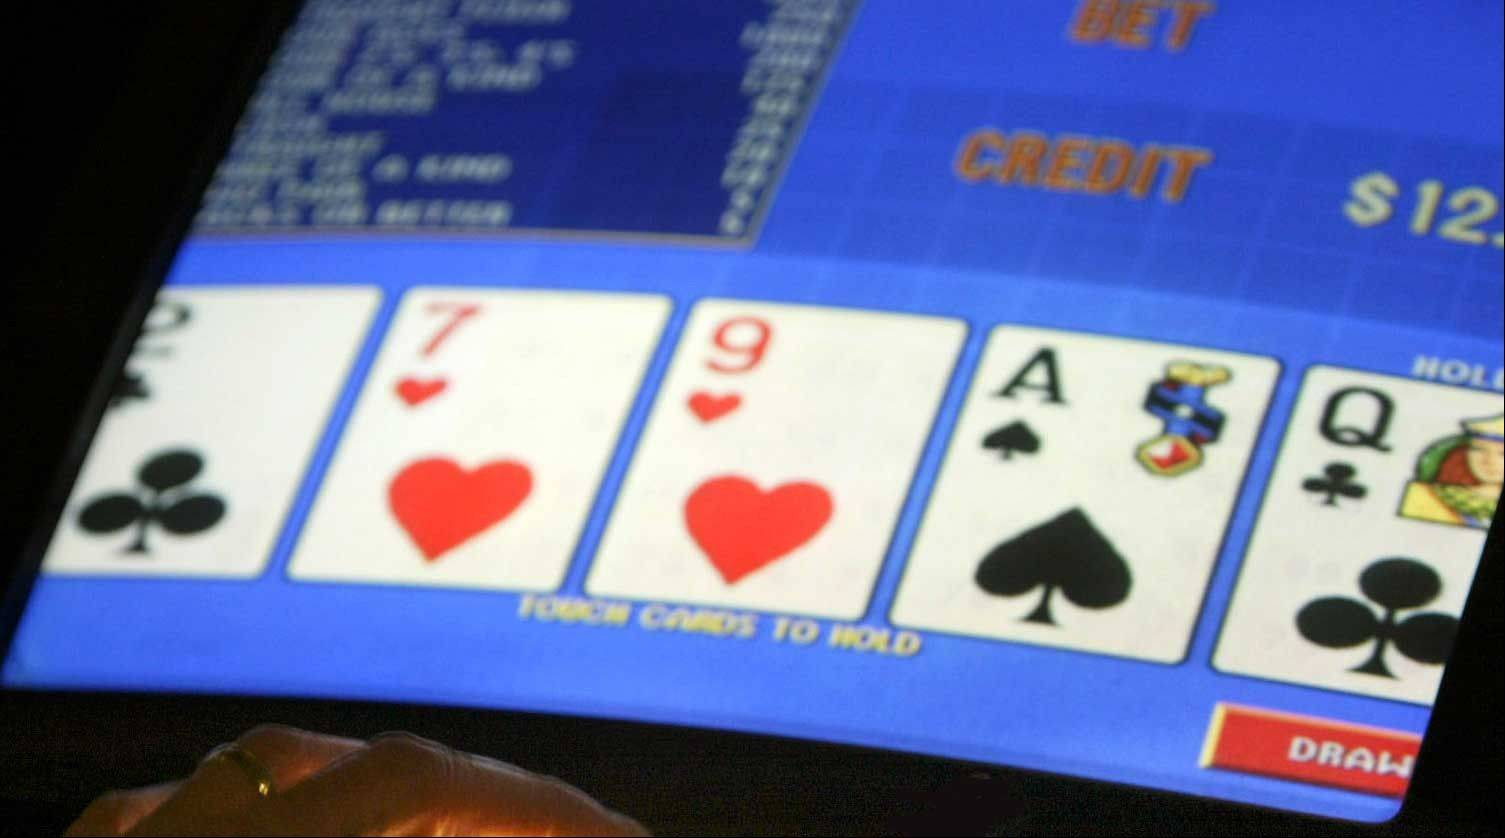 Video gambling will be allowed in Round Lake Beach, village officials have decided.